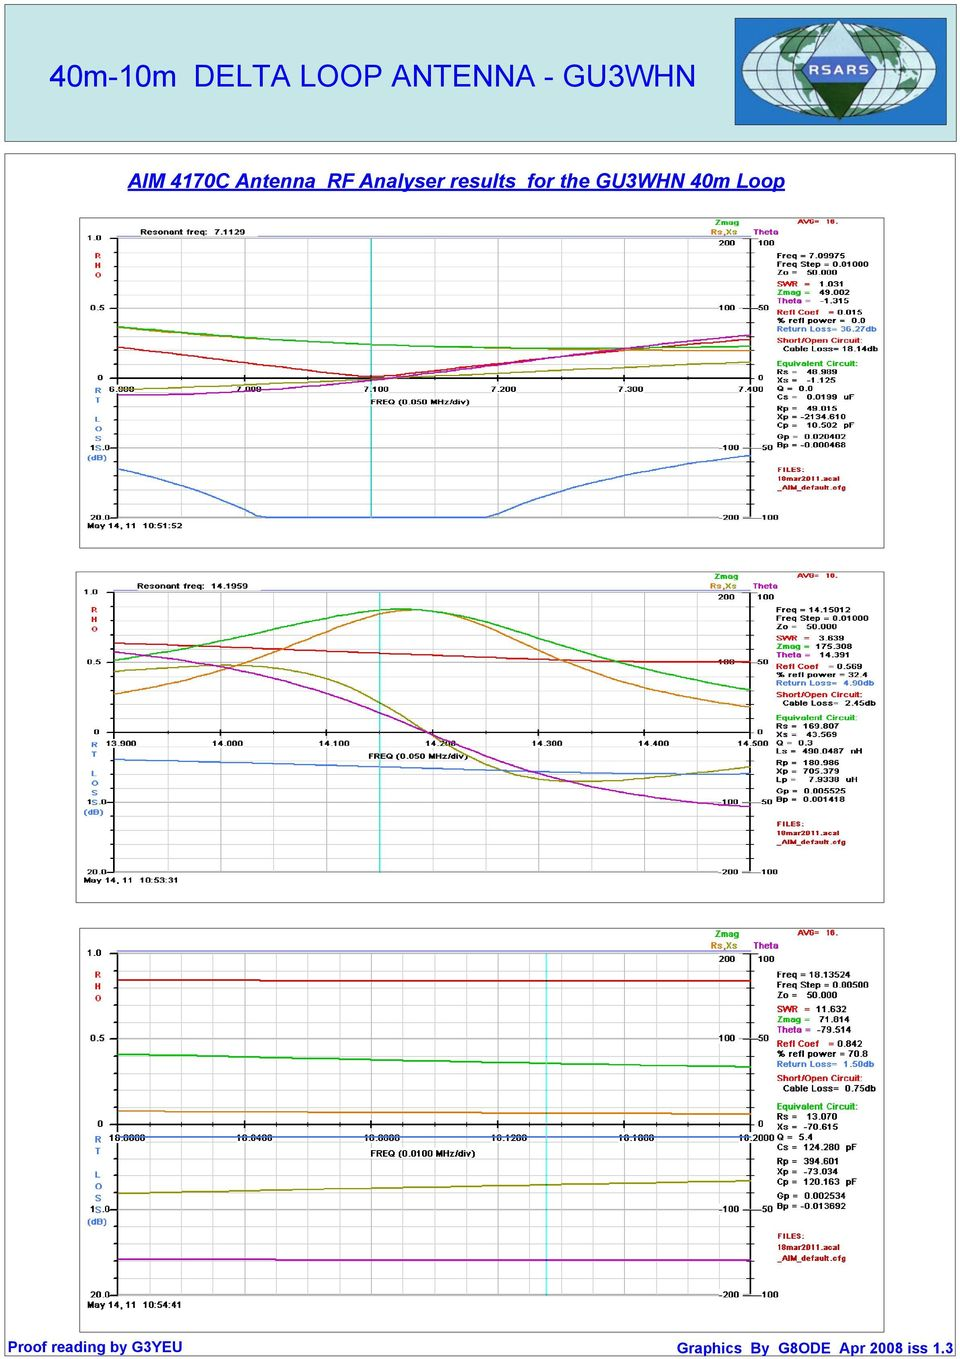 6 X Loop Antenna 40m 10m Delta Gu3whn Pdf Aim 4170c Rf Analyser Results For The Following Pages Have A Gal Ana Model Of Inverted